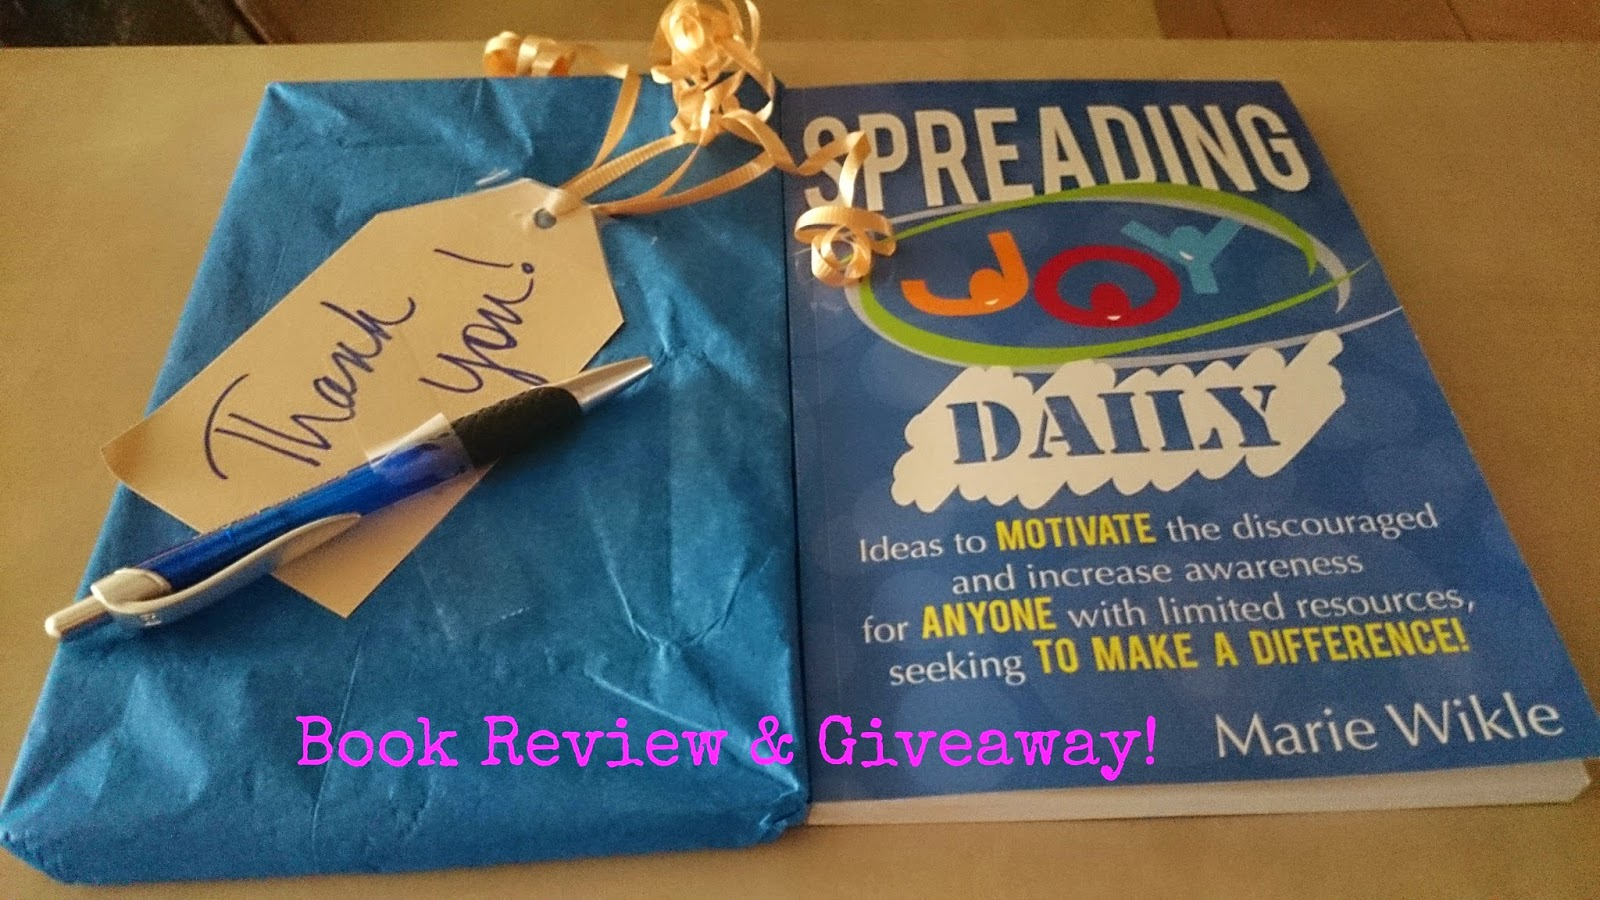 http://raisingsamuels.blogspot.com/2014/06/book-review-giveaway-spreading-joy.html